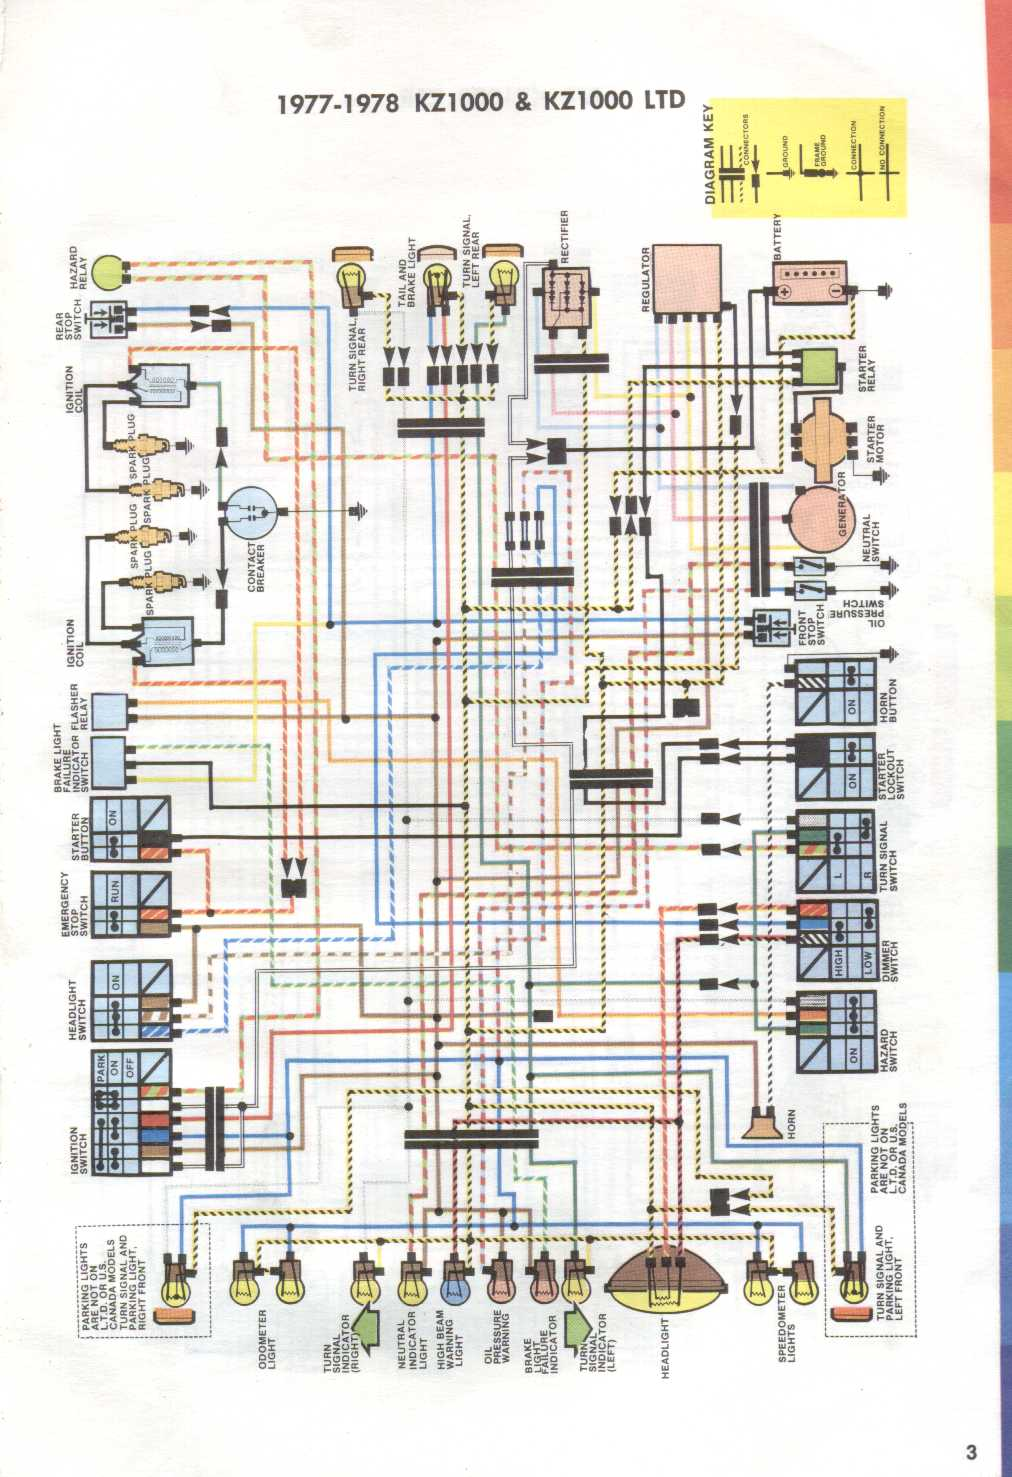 Wiring Diagram for 1977 – 1978 Kawasaki KZ1000 and KZ1000LTD – Evan Fell  Motorcycle WorksEvan Fell Motorcycle Works